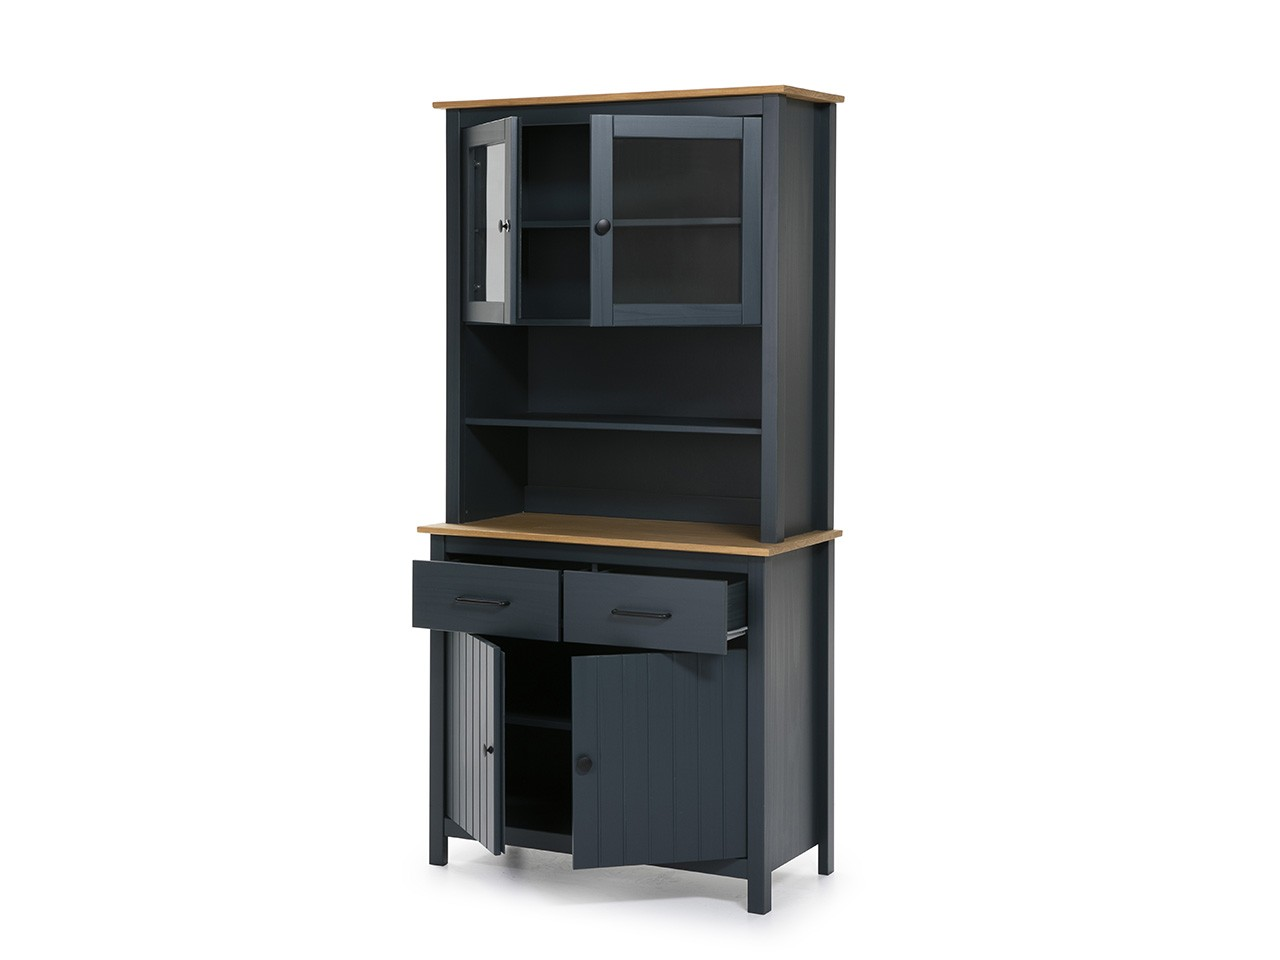 Sillones relax diseo oliver relax silln relax para los for Sillones jardin baratos